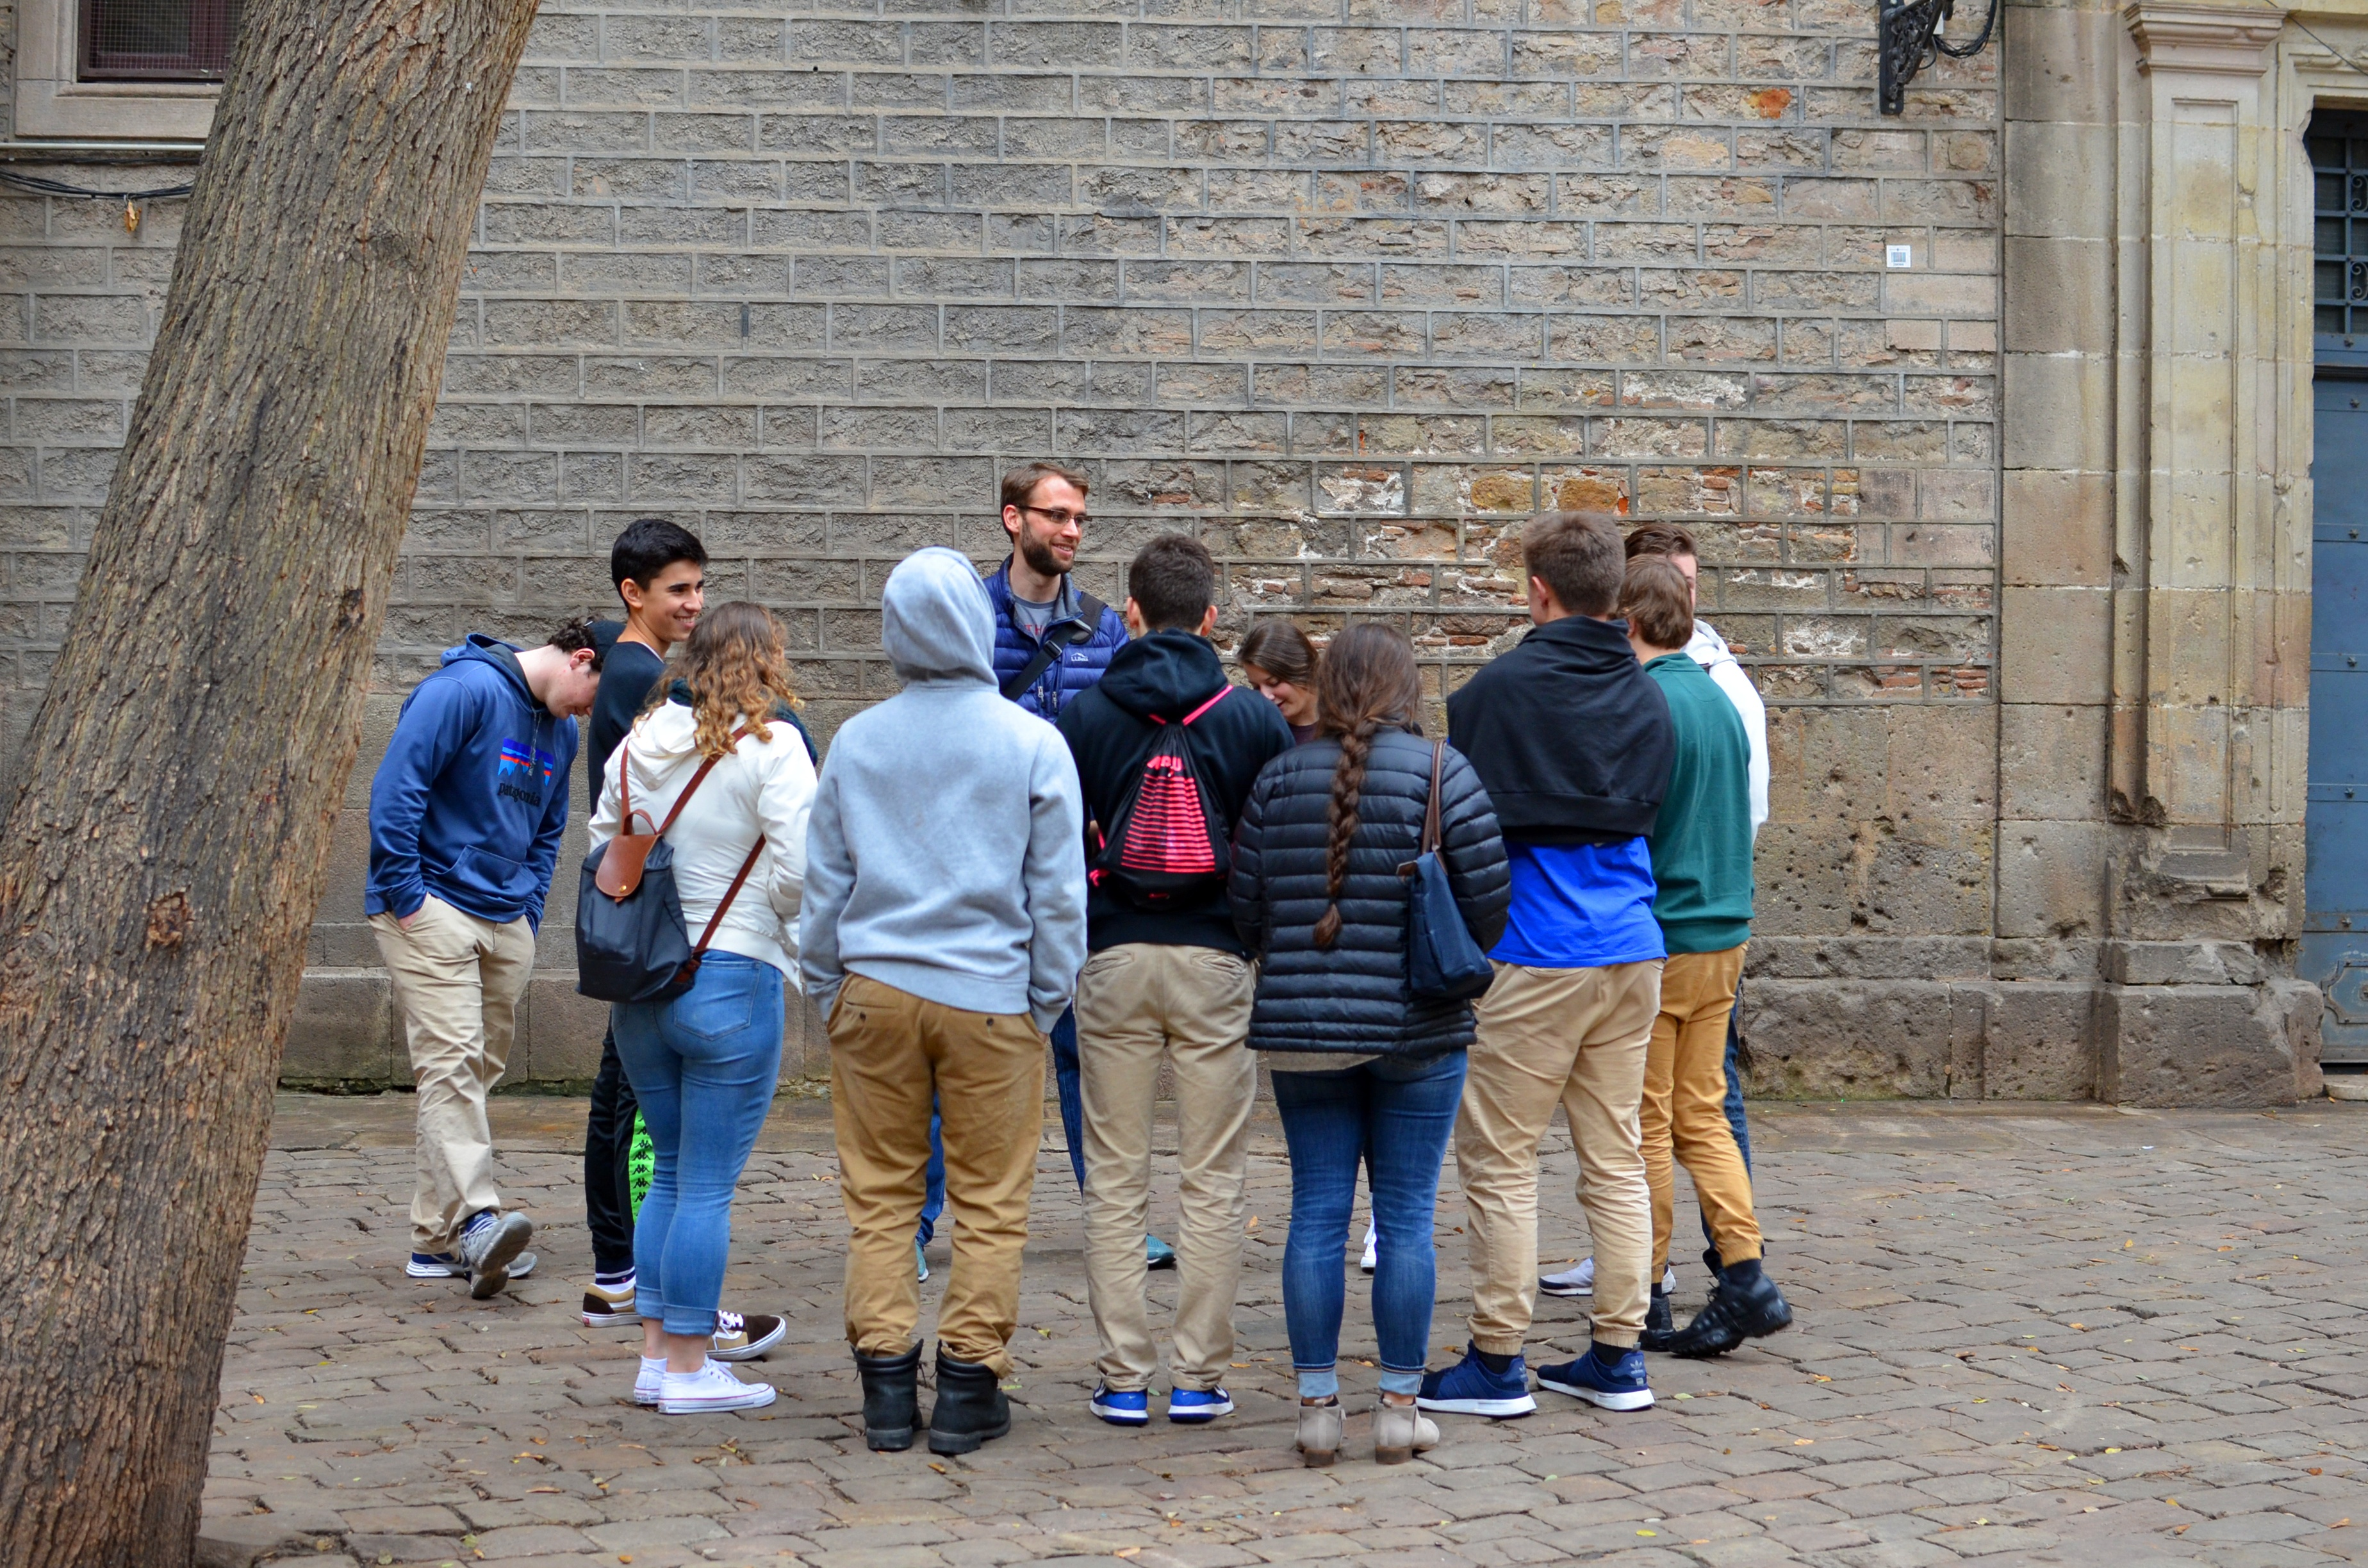 Proctor en Segovia examines the layers of history in Barcelona's gothic quarter